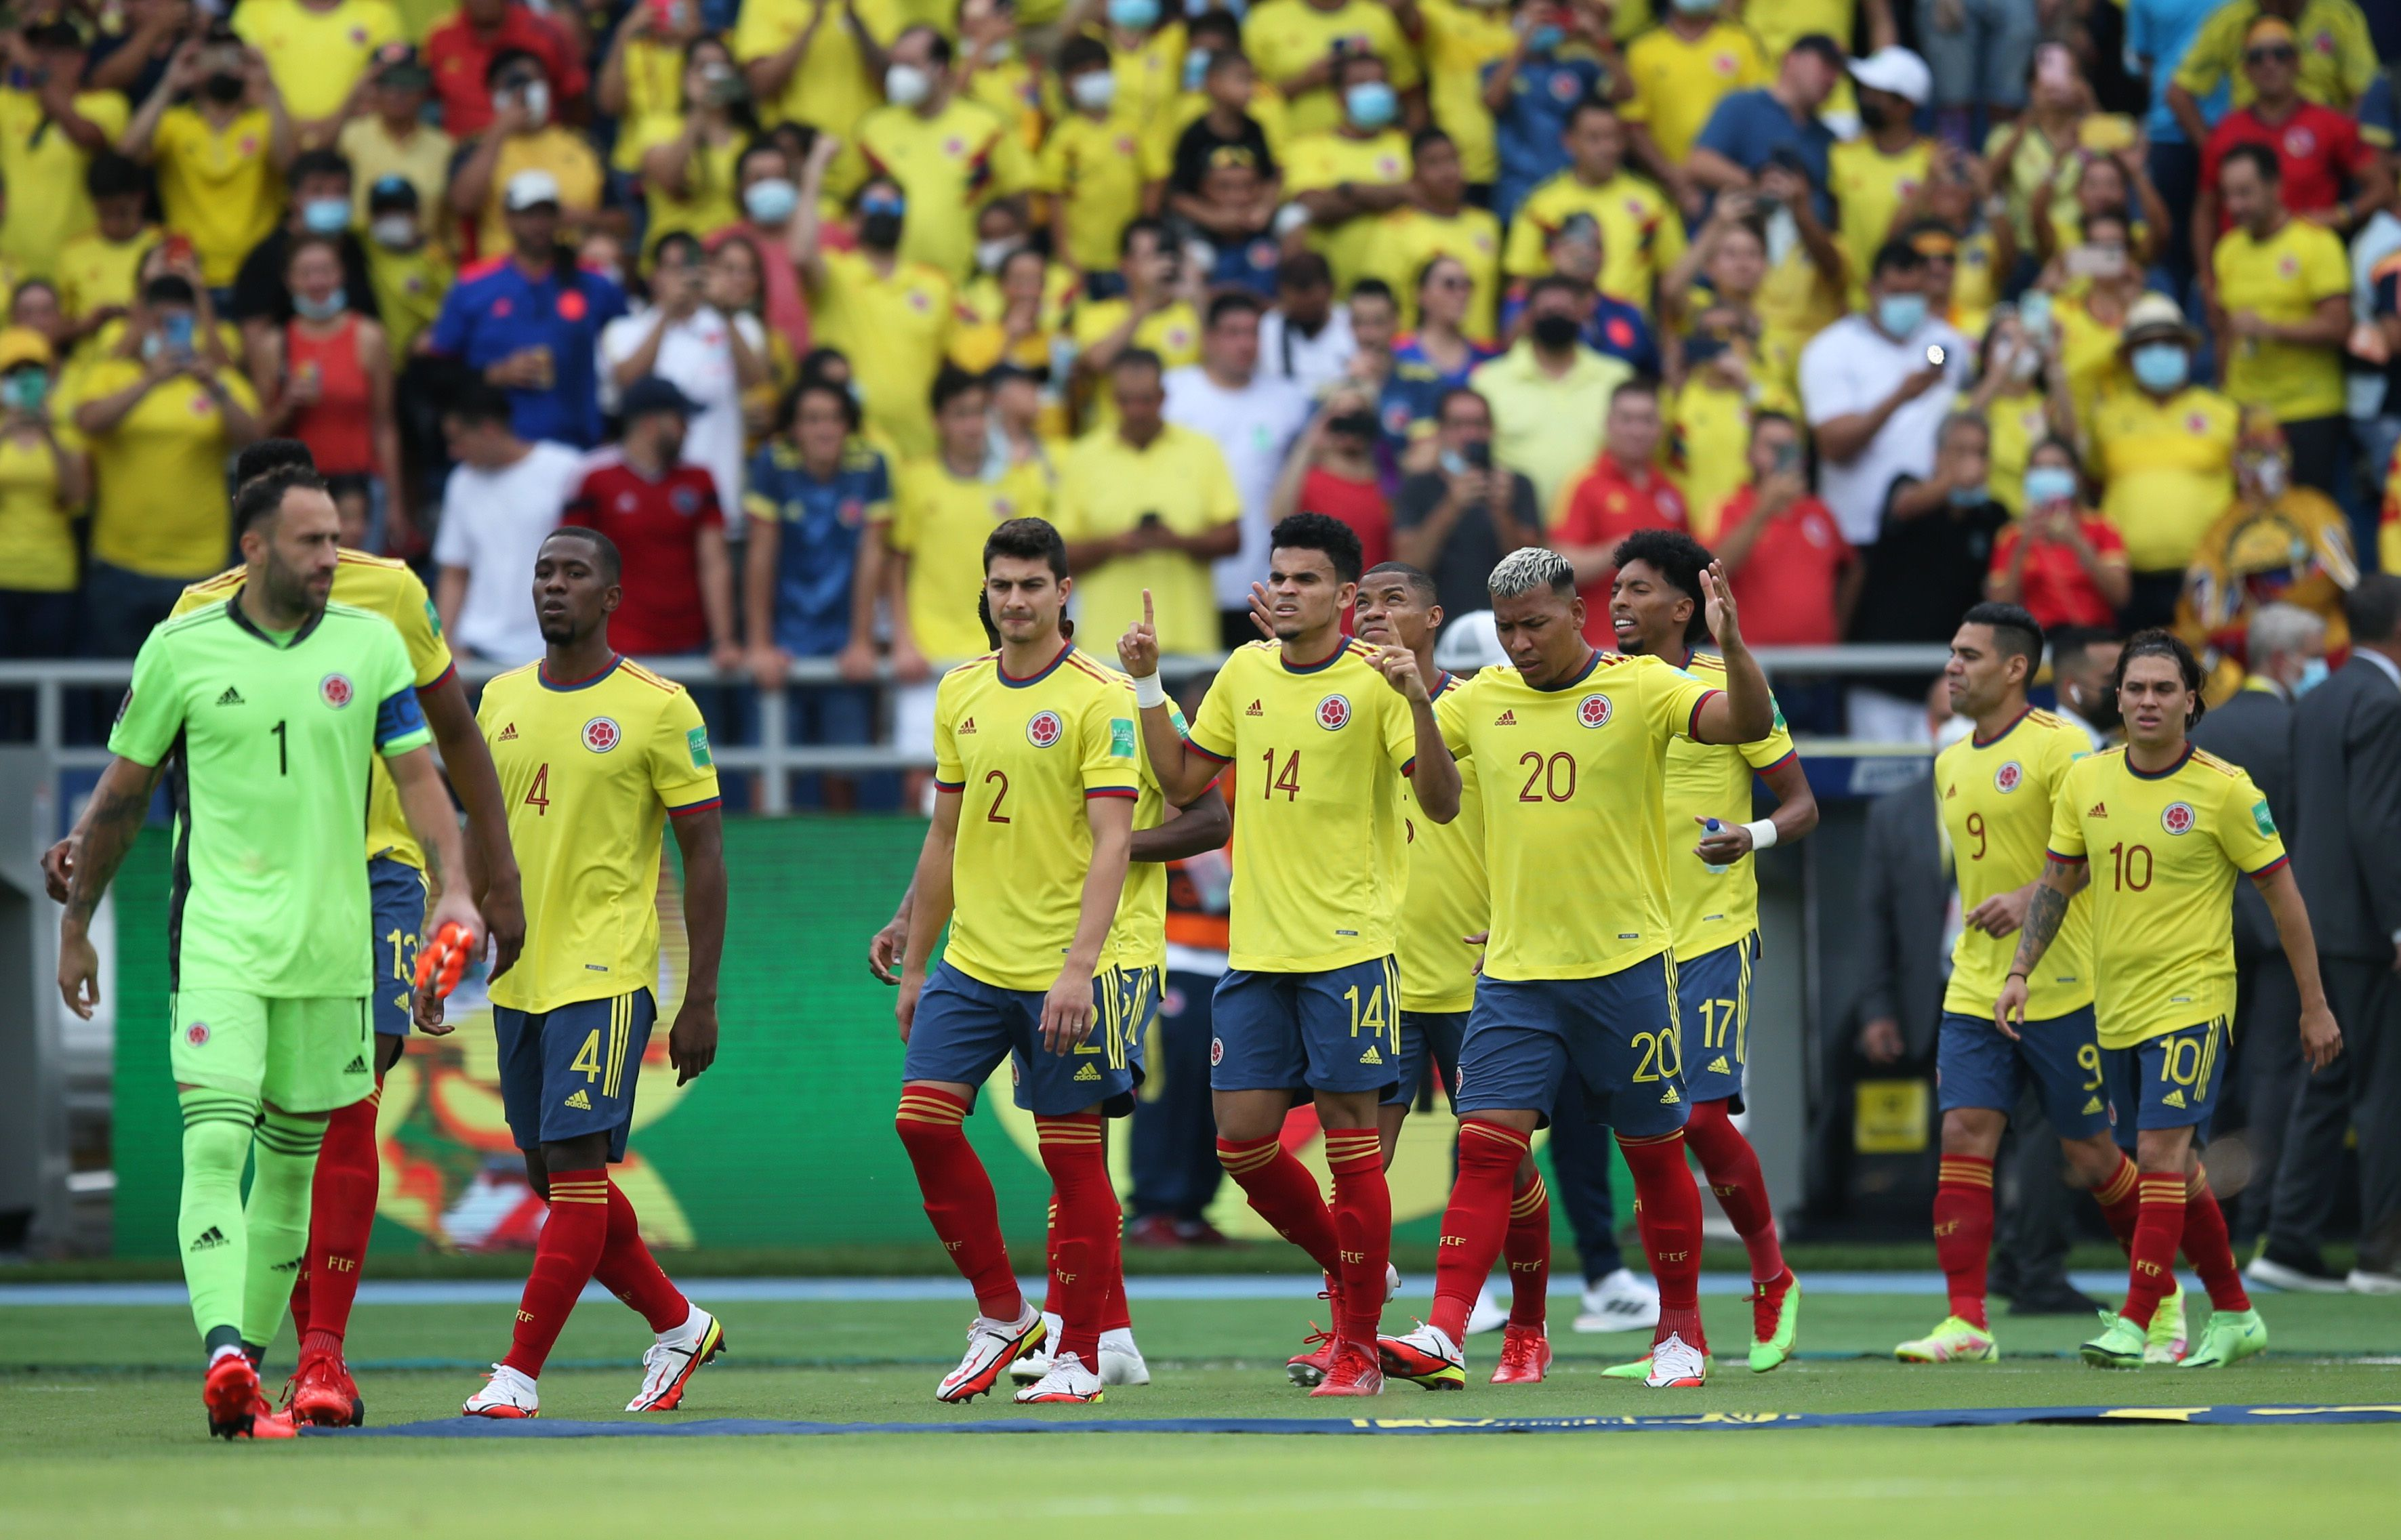 Soccer Football - World Cup - South American Qualifiers - Colombia v Brazil - Estadio Metropolitano Roberto Melendez, Barranquilla, Colombia - October 10, 2021 Colombia players walk onto the pitch before the match REUTERS/Luisa Gonzalez